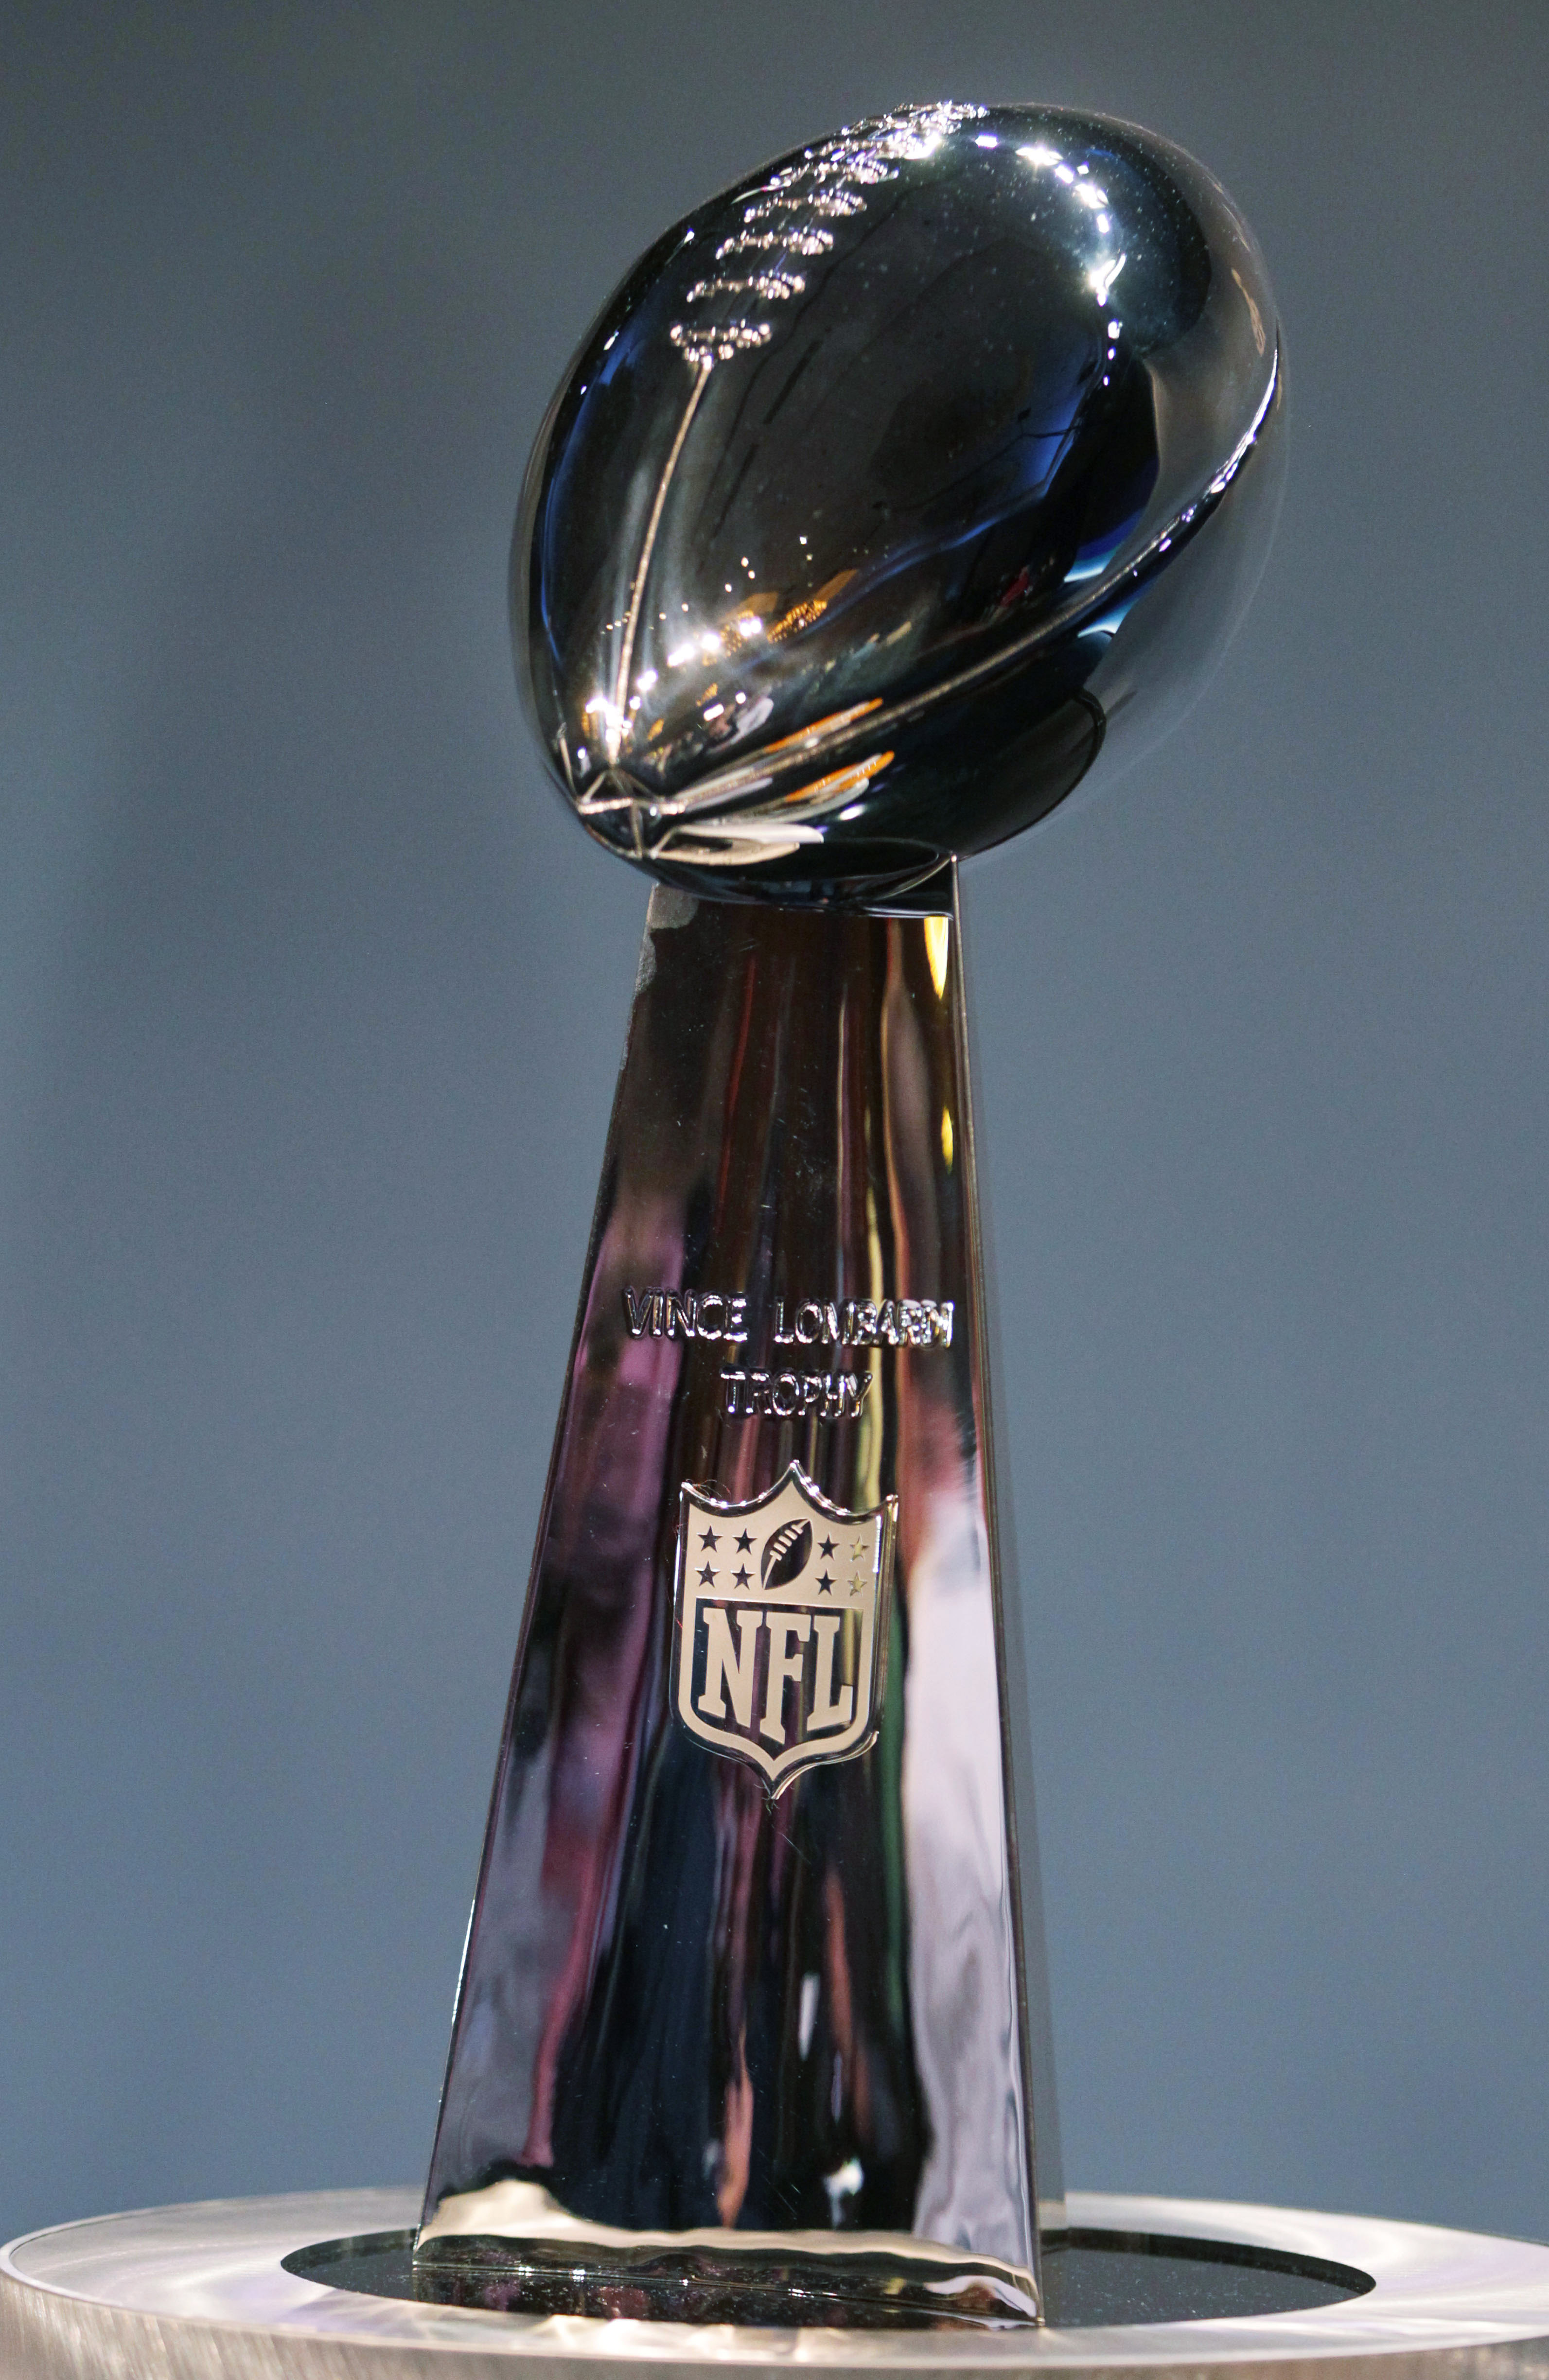 DALLAS, TX - FEBRUARY 04:  The Vince Lombardi Trophy is displayed during a press conference with NFL commissioner Roger Goodell at the Super Bowl XLV media center on February 4, 2011 in Dallas, Texas. The Green Bay Packers will play the Pittsburgh Steeler